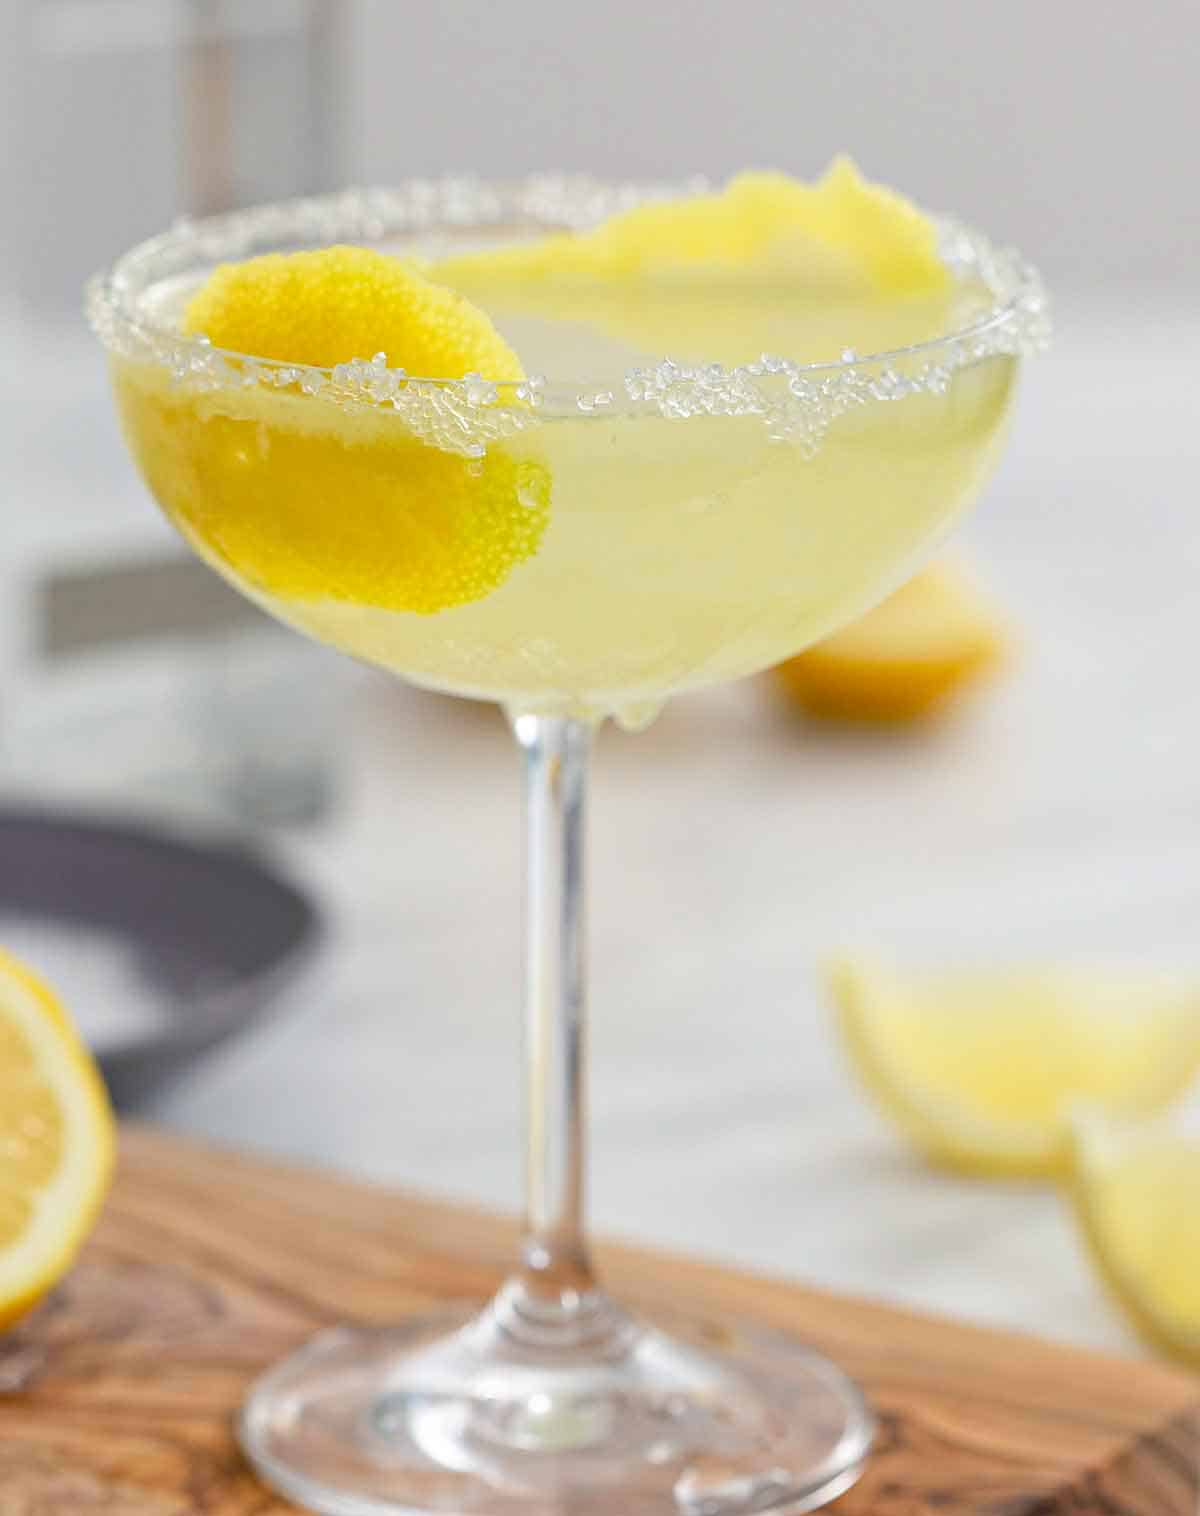 A lemon drop martini with sugar on the rim and lemon peel in the glass on a wooden cutting board.